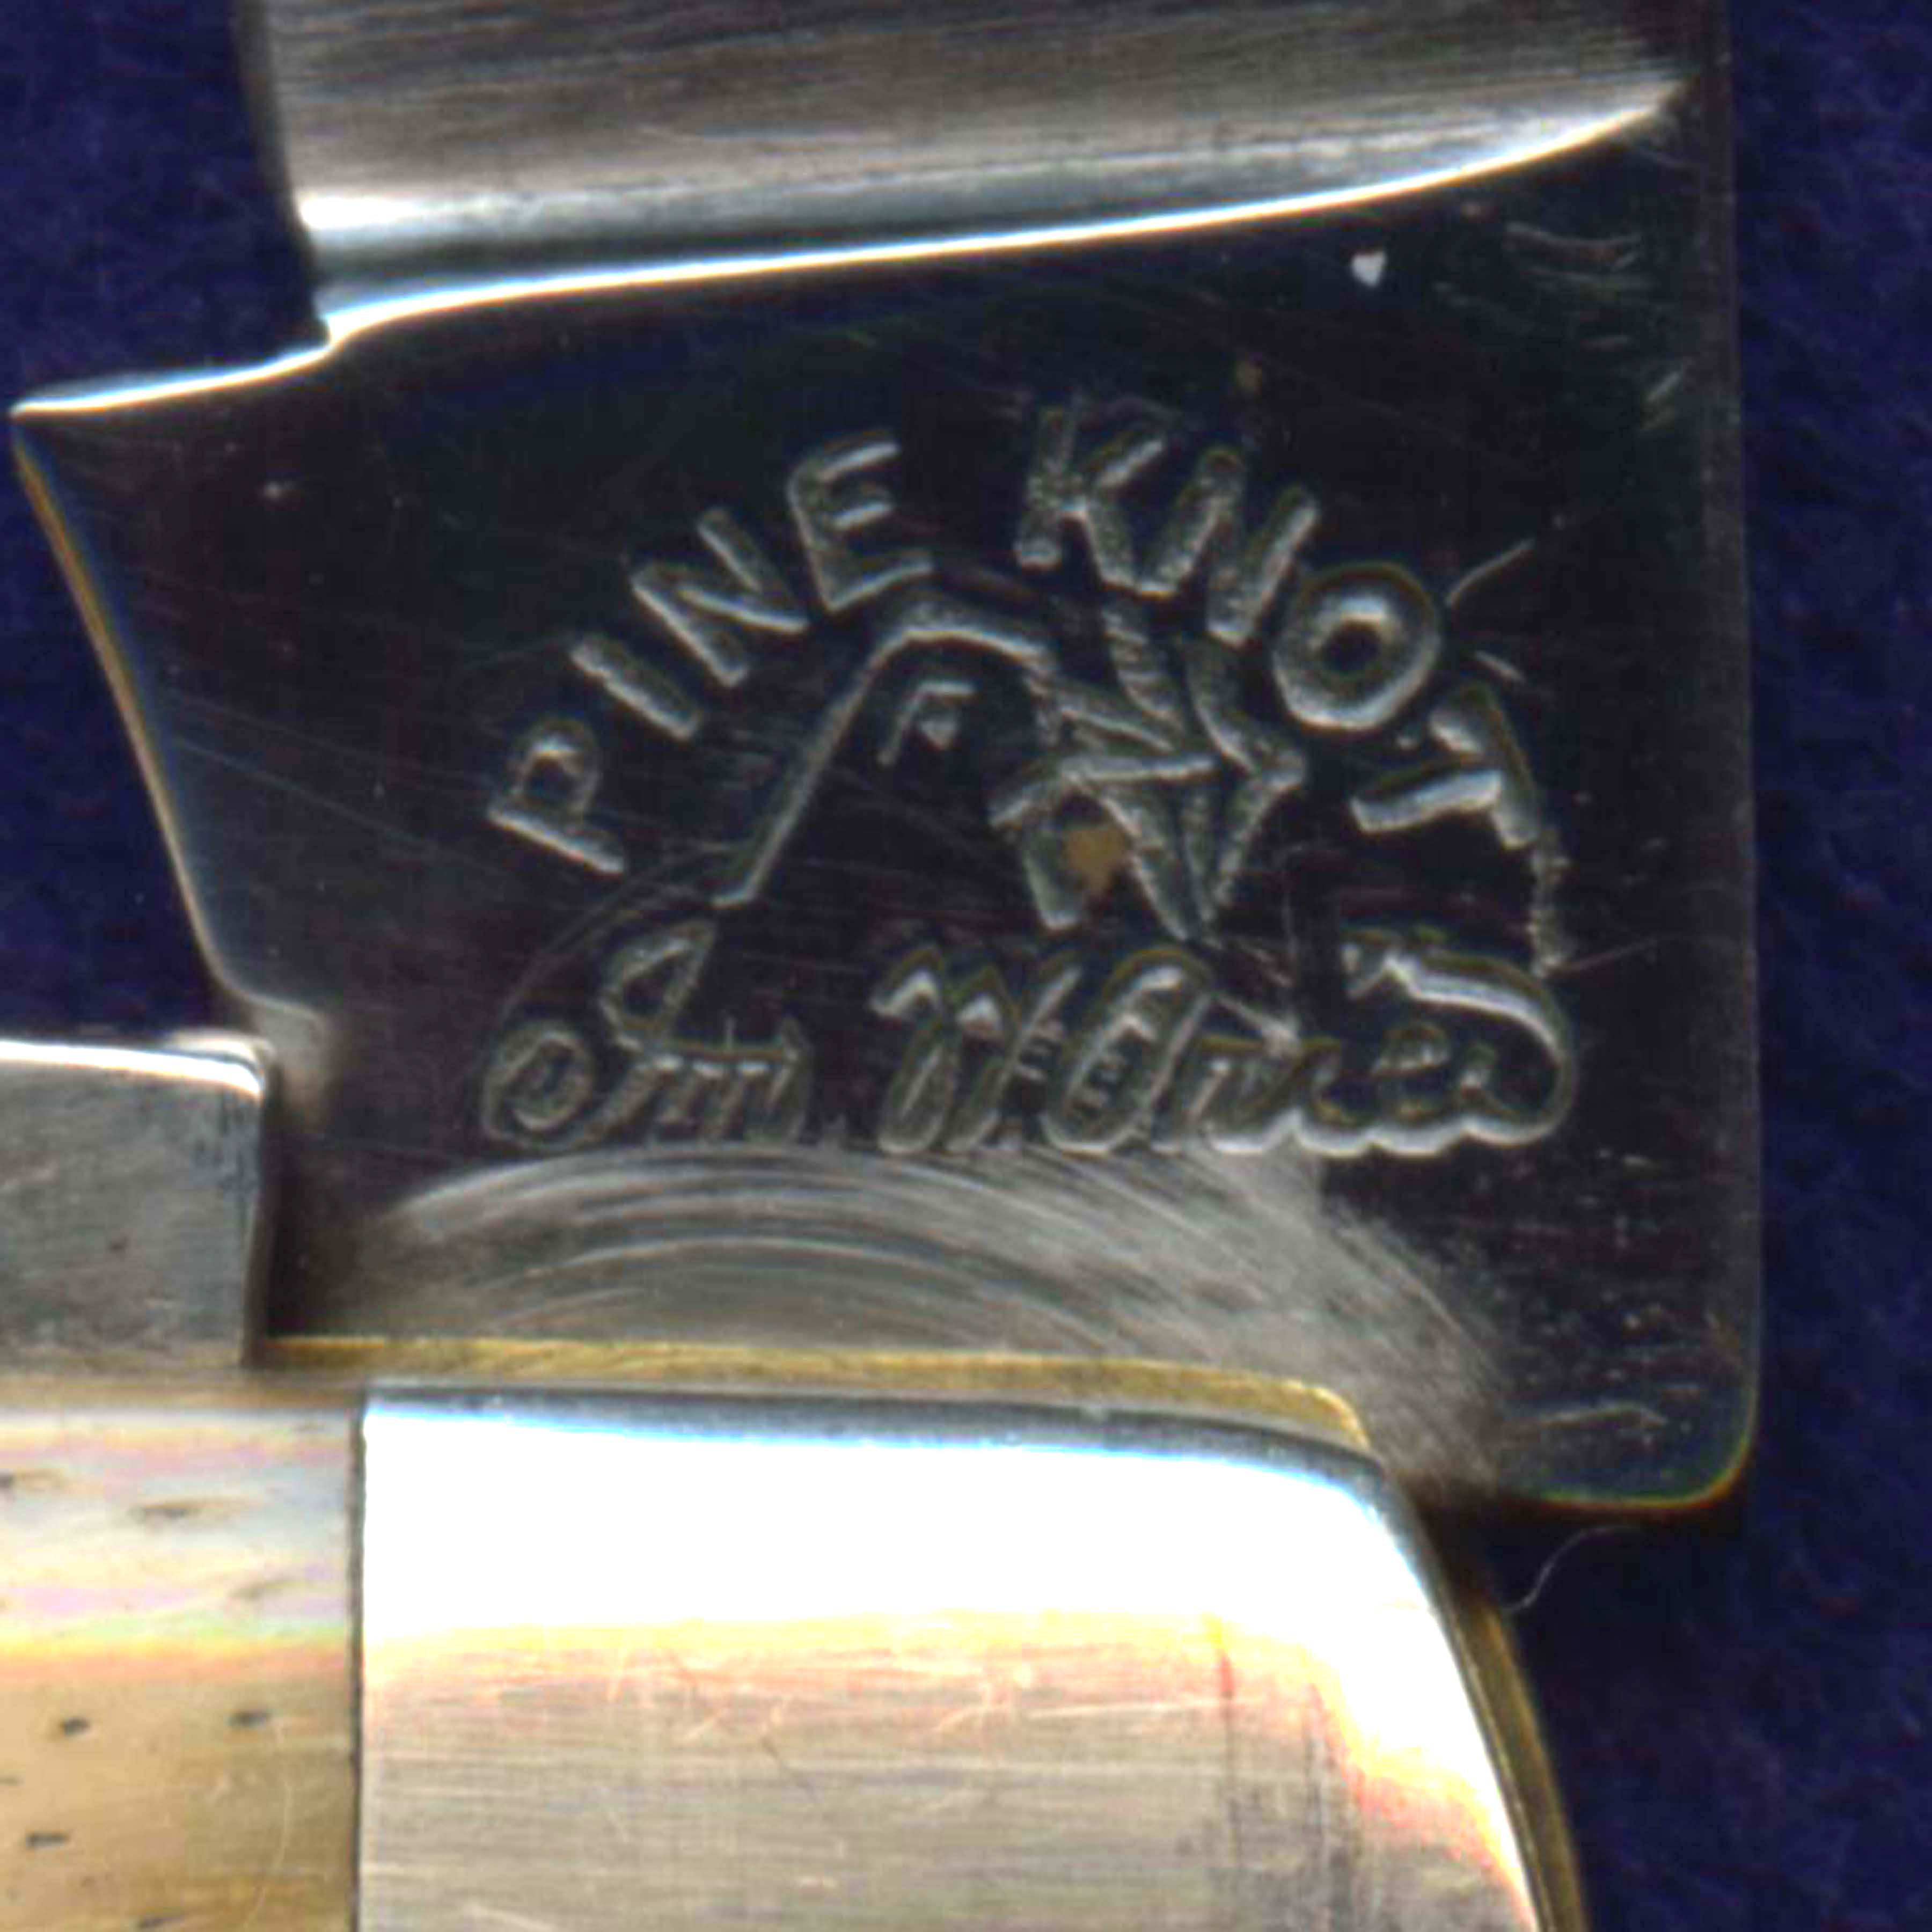 history of the Robeson Cutlery Company